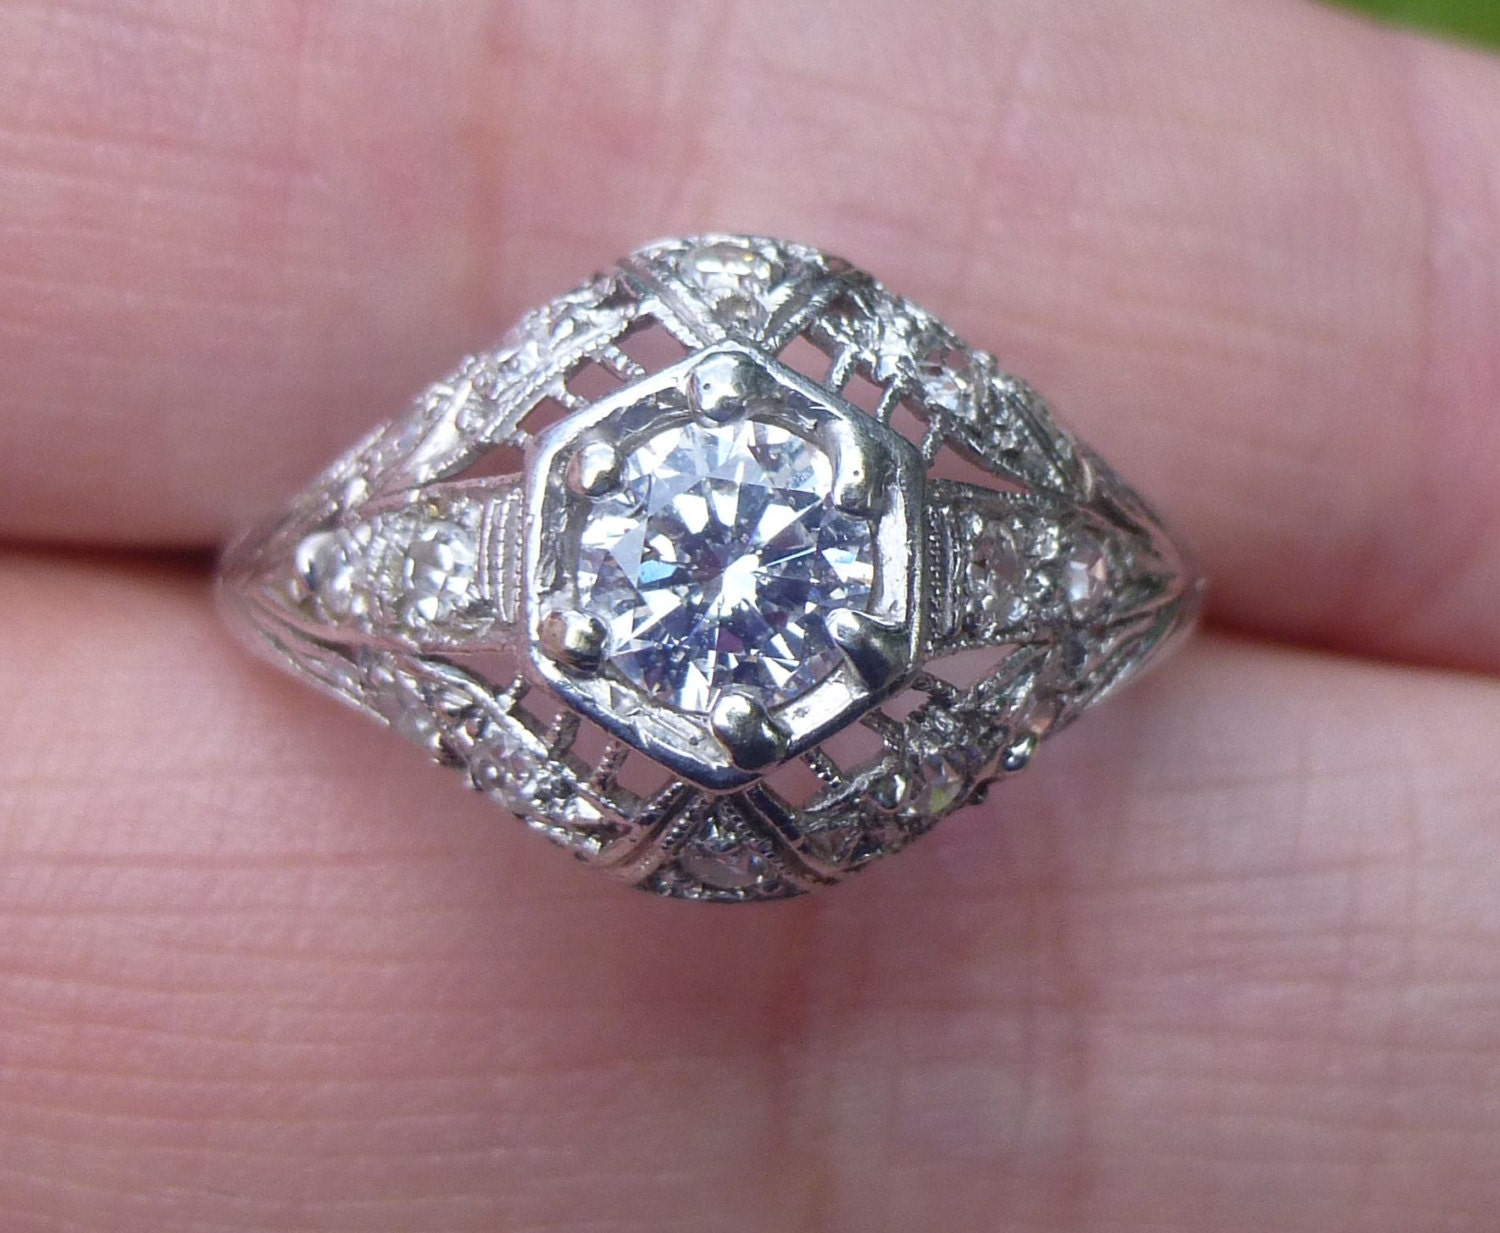 SALE Antique Filigree Ring Platinum Diamond Engagement Ring